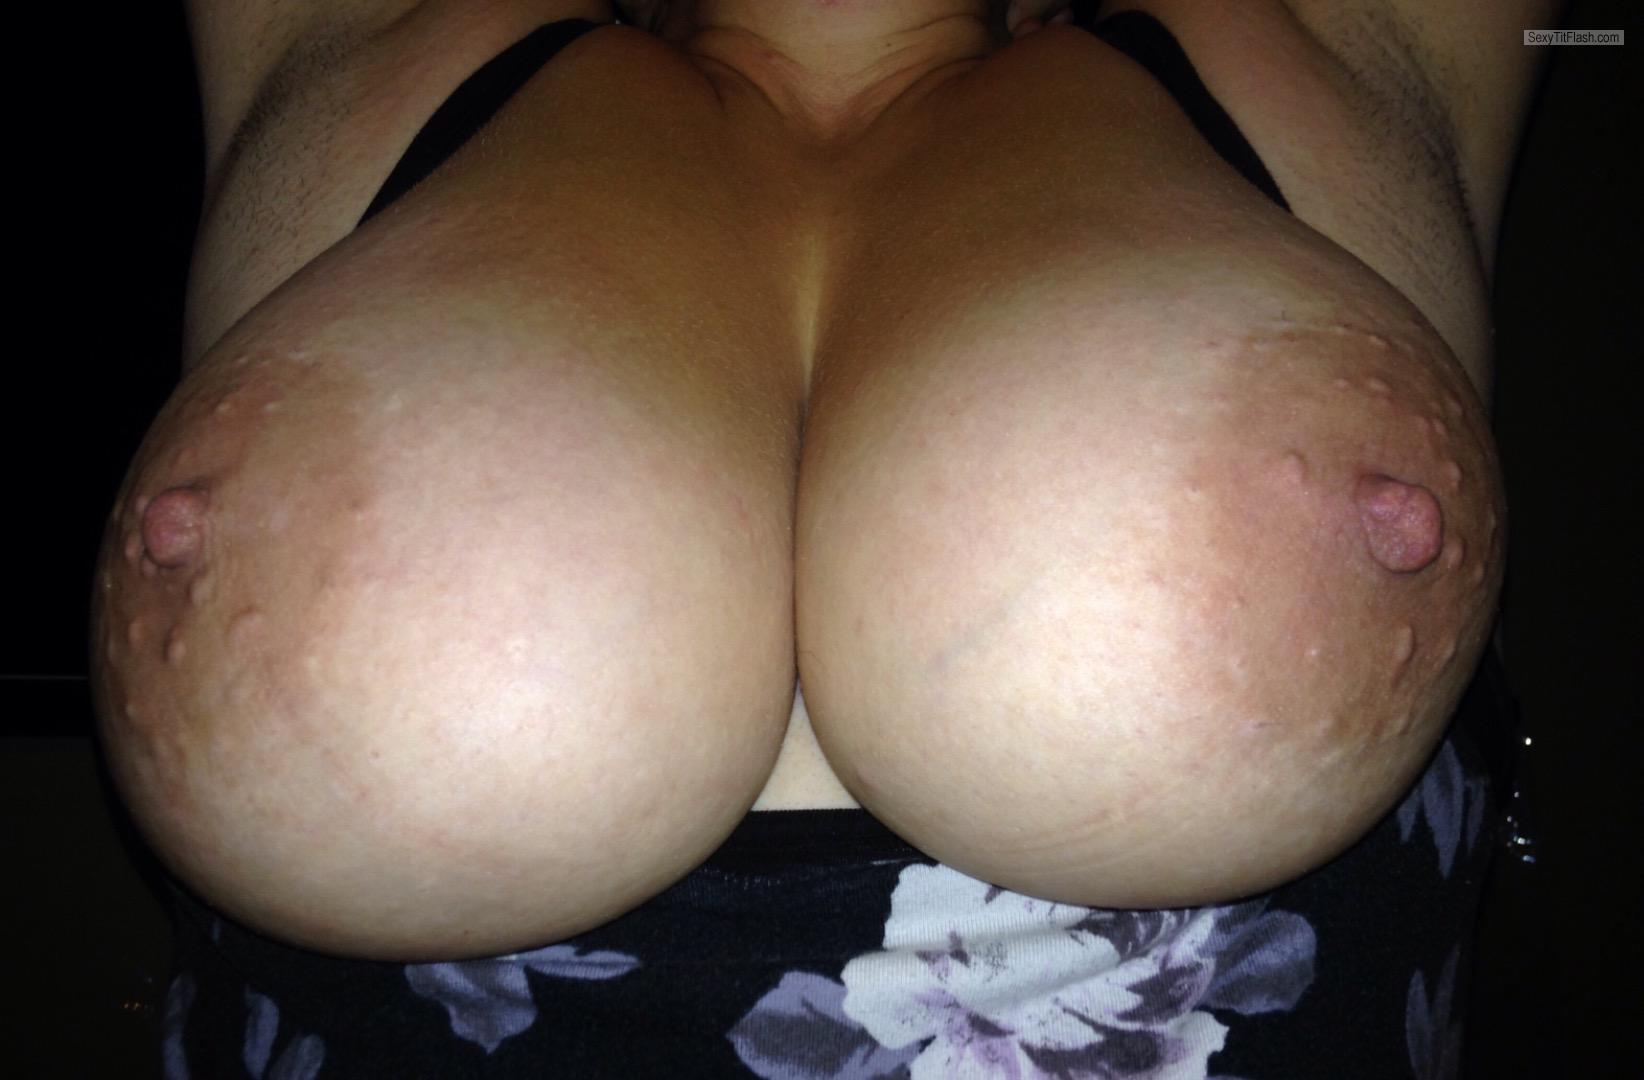 Tit Flash: My Very Big Tits - Bigtitsfuckya from United States